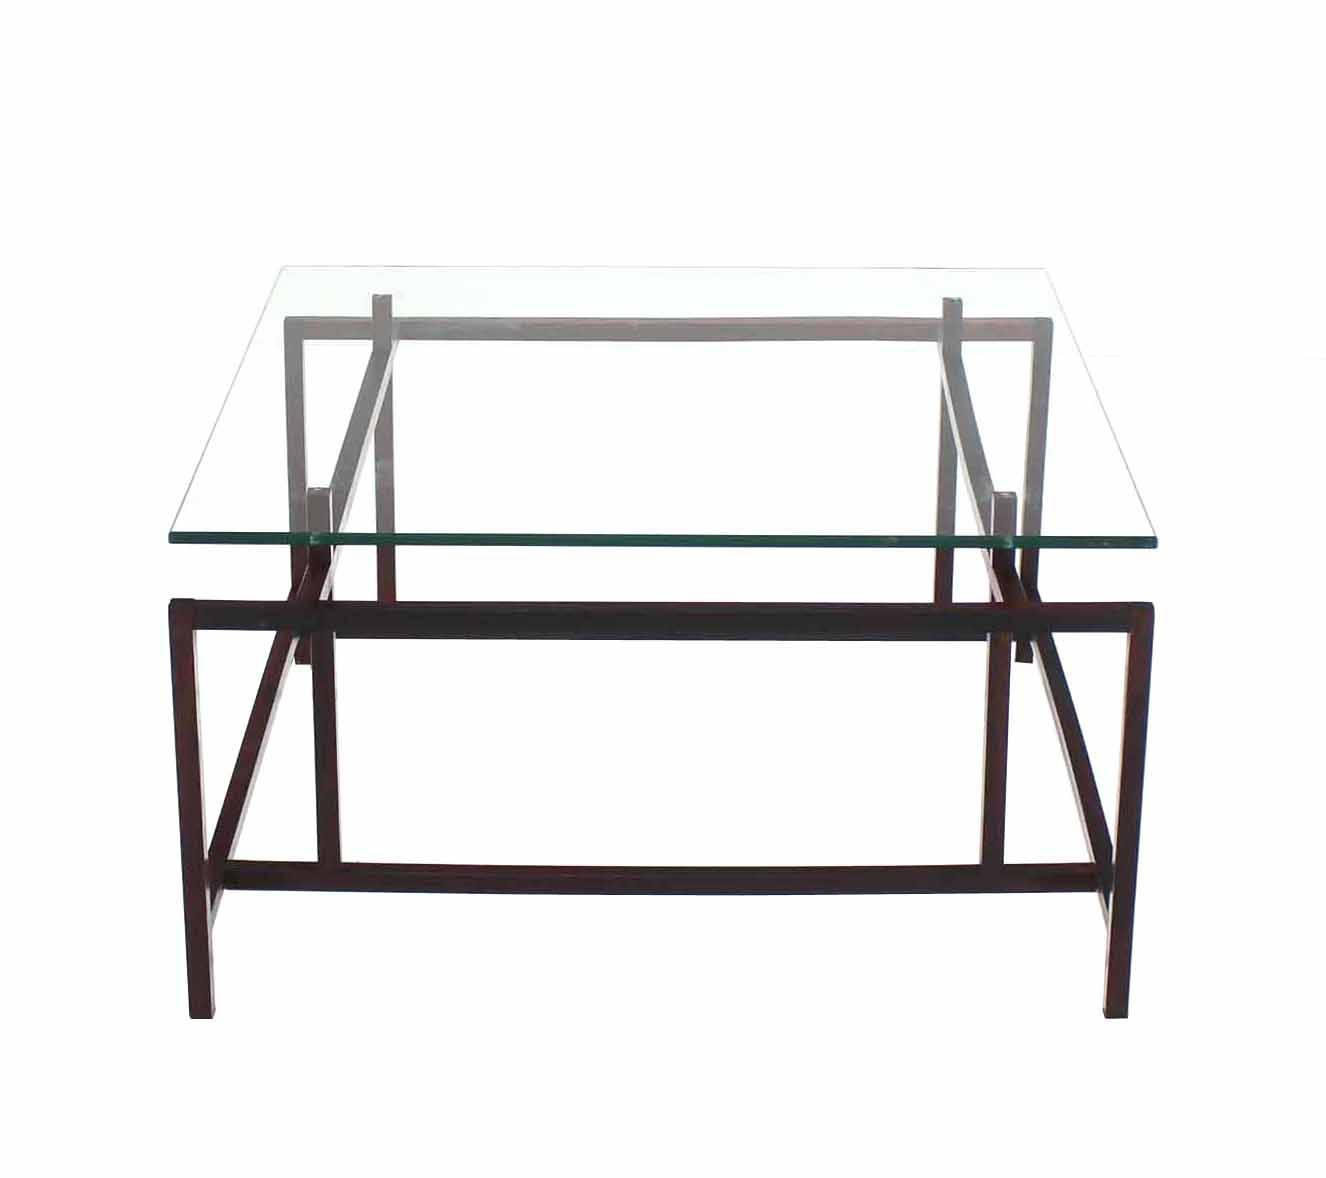 Rosewood Geometrical Base Glass Top Mid Century Modern Coffee Table For Sale At 1stdibs